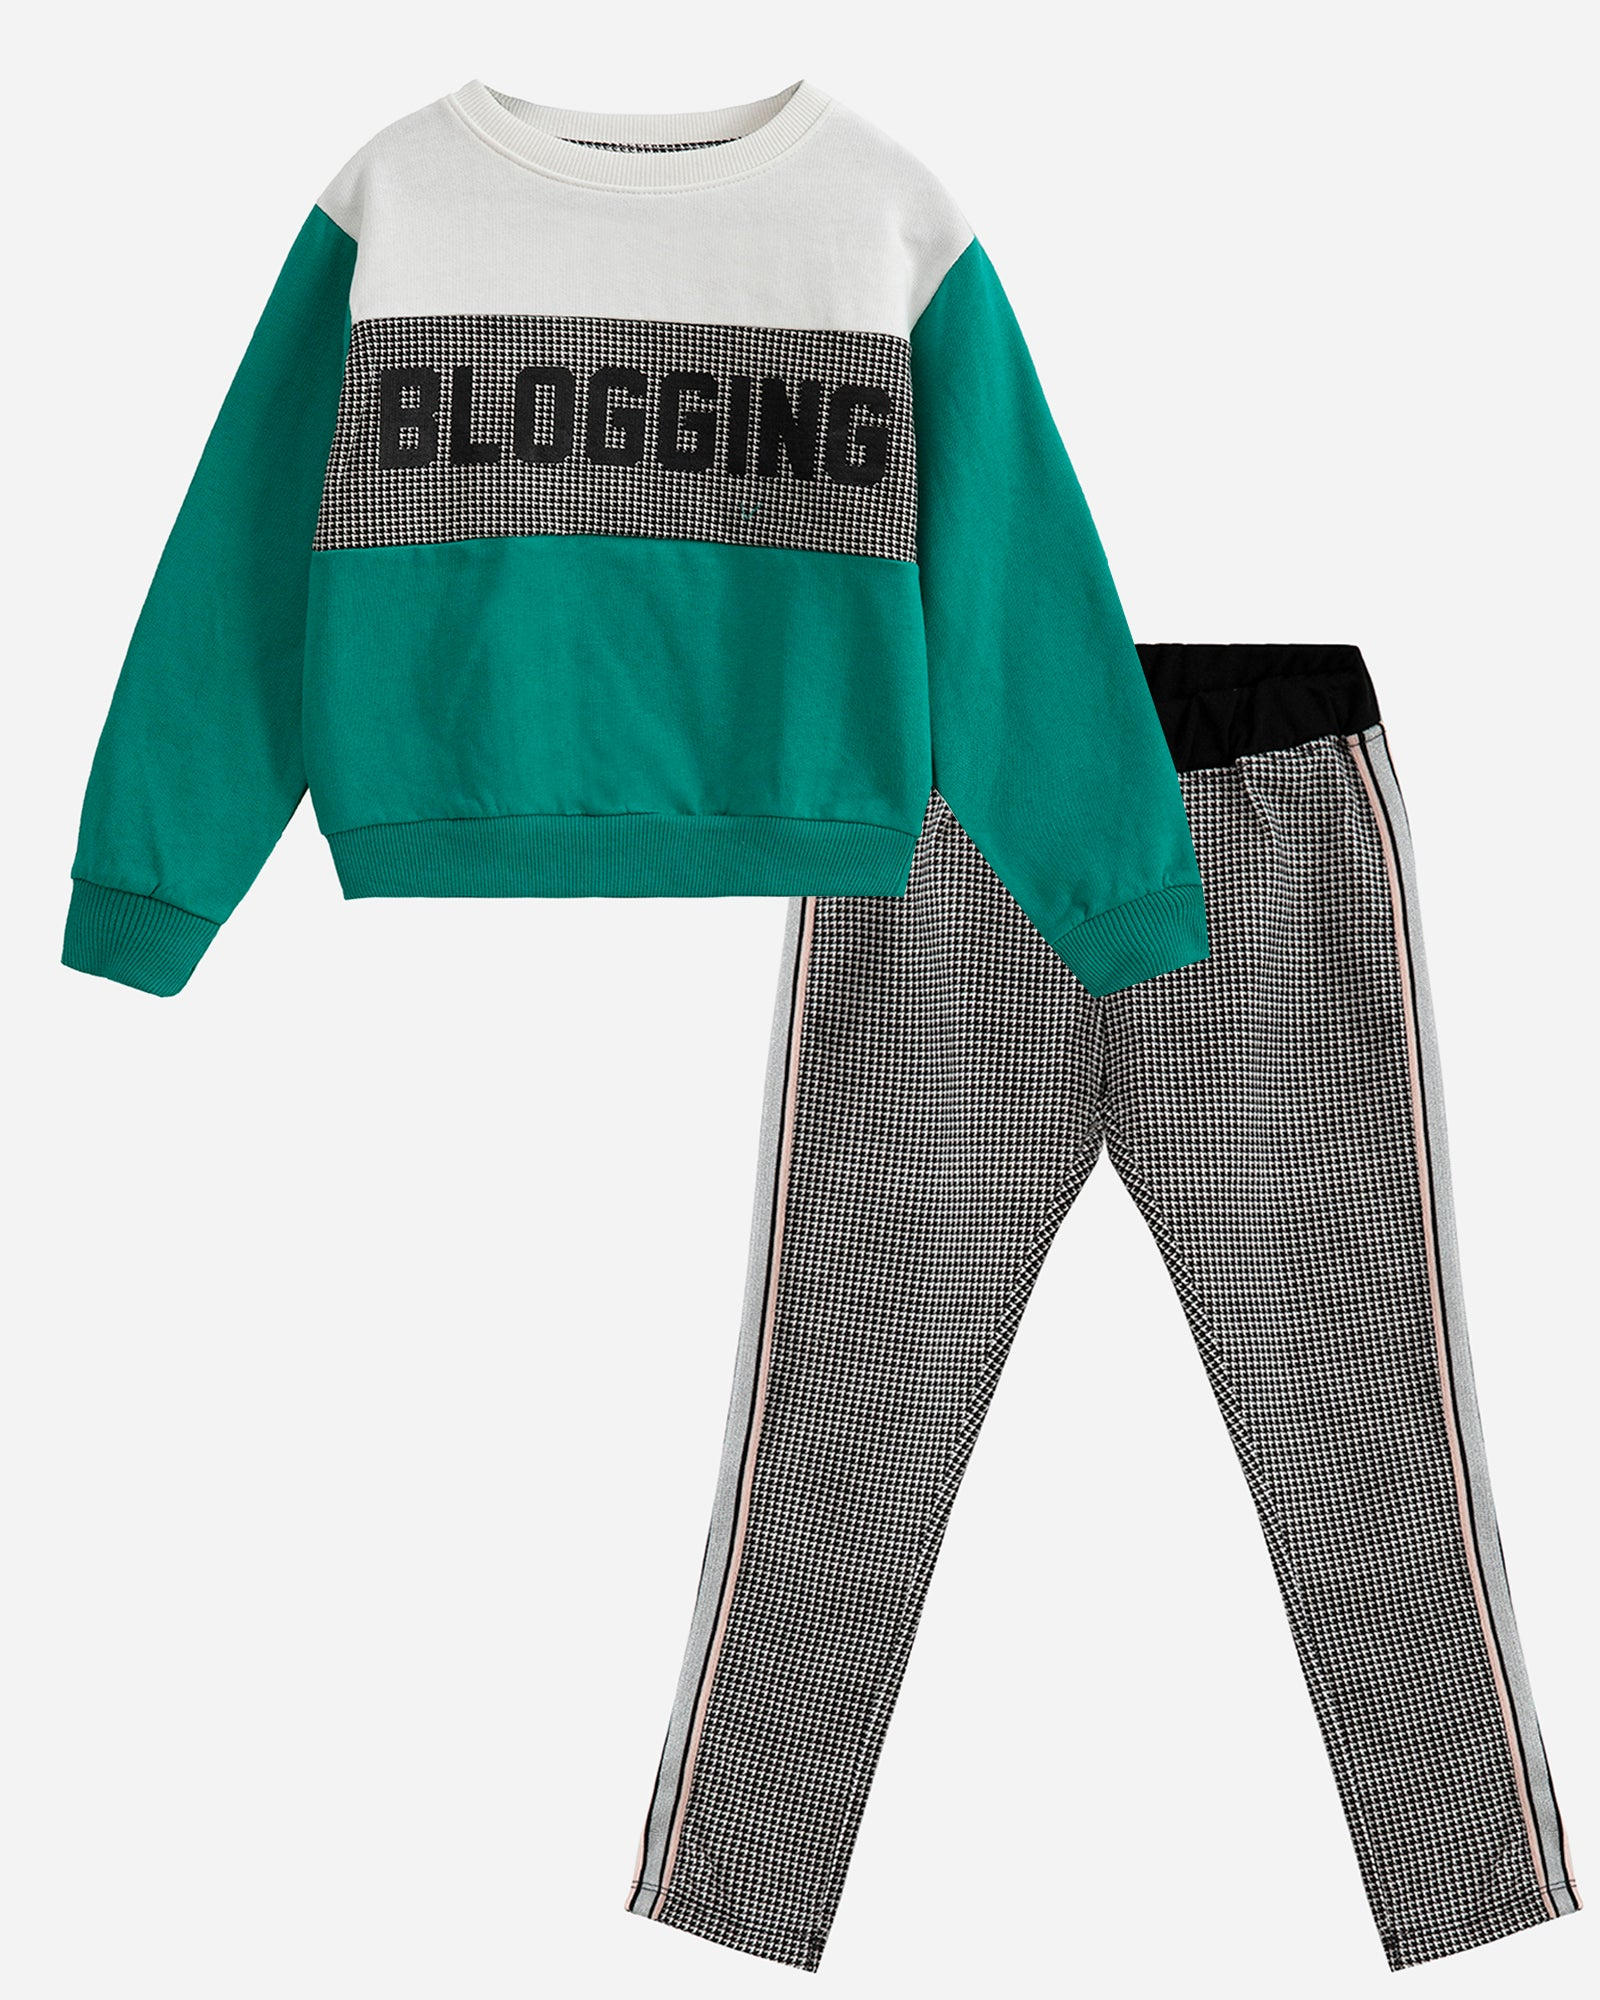 Blogging Suit